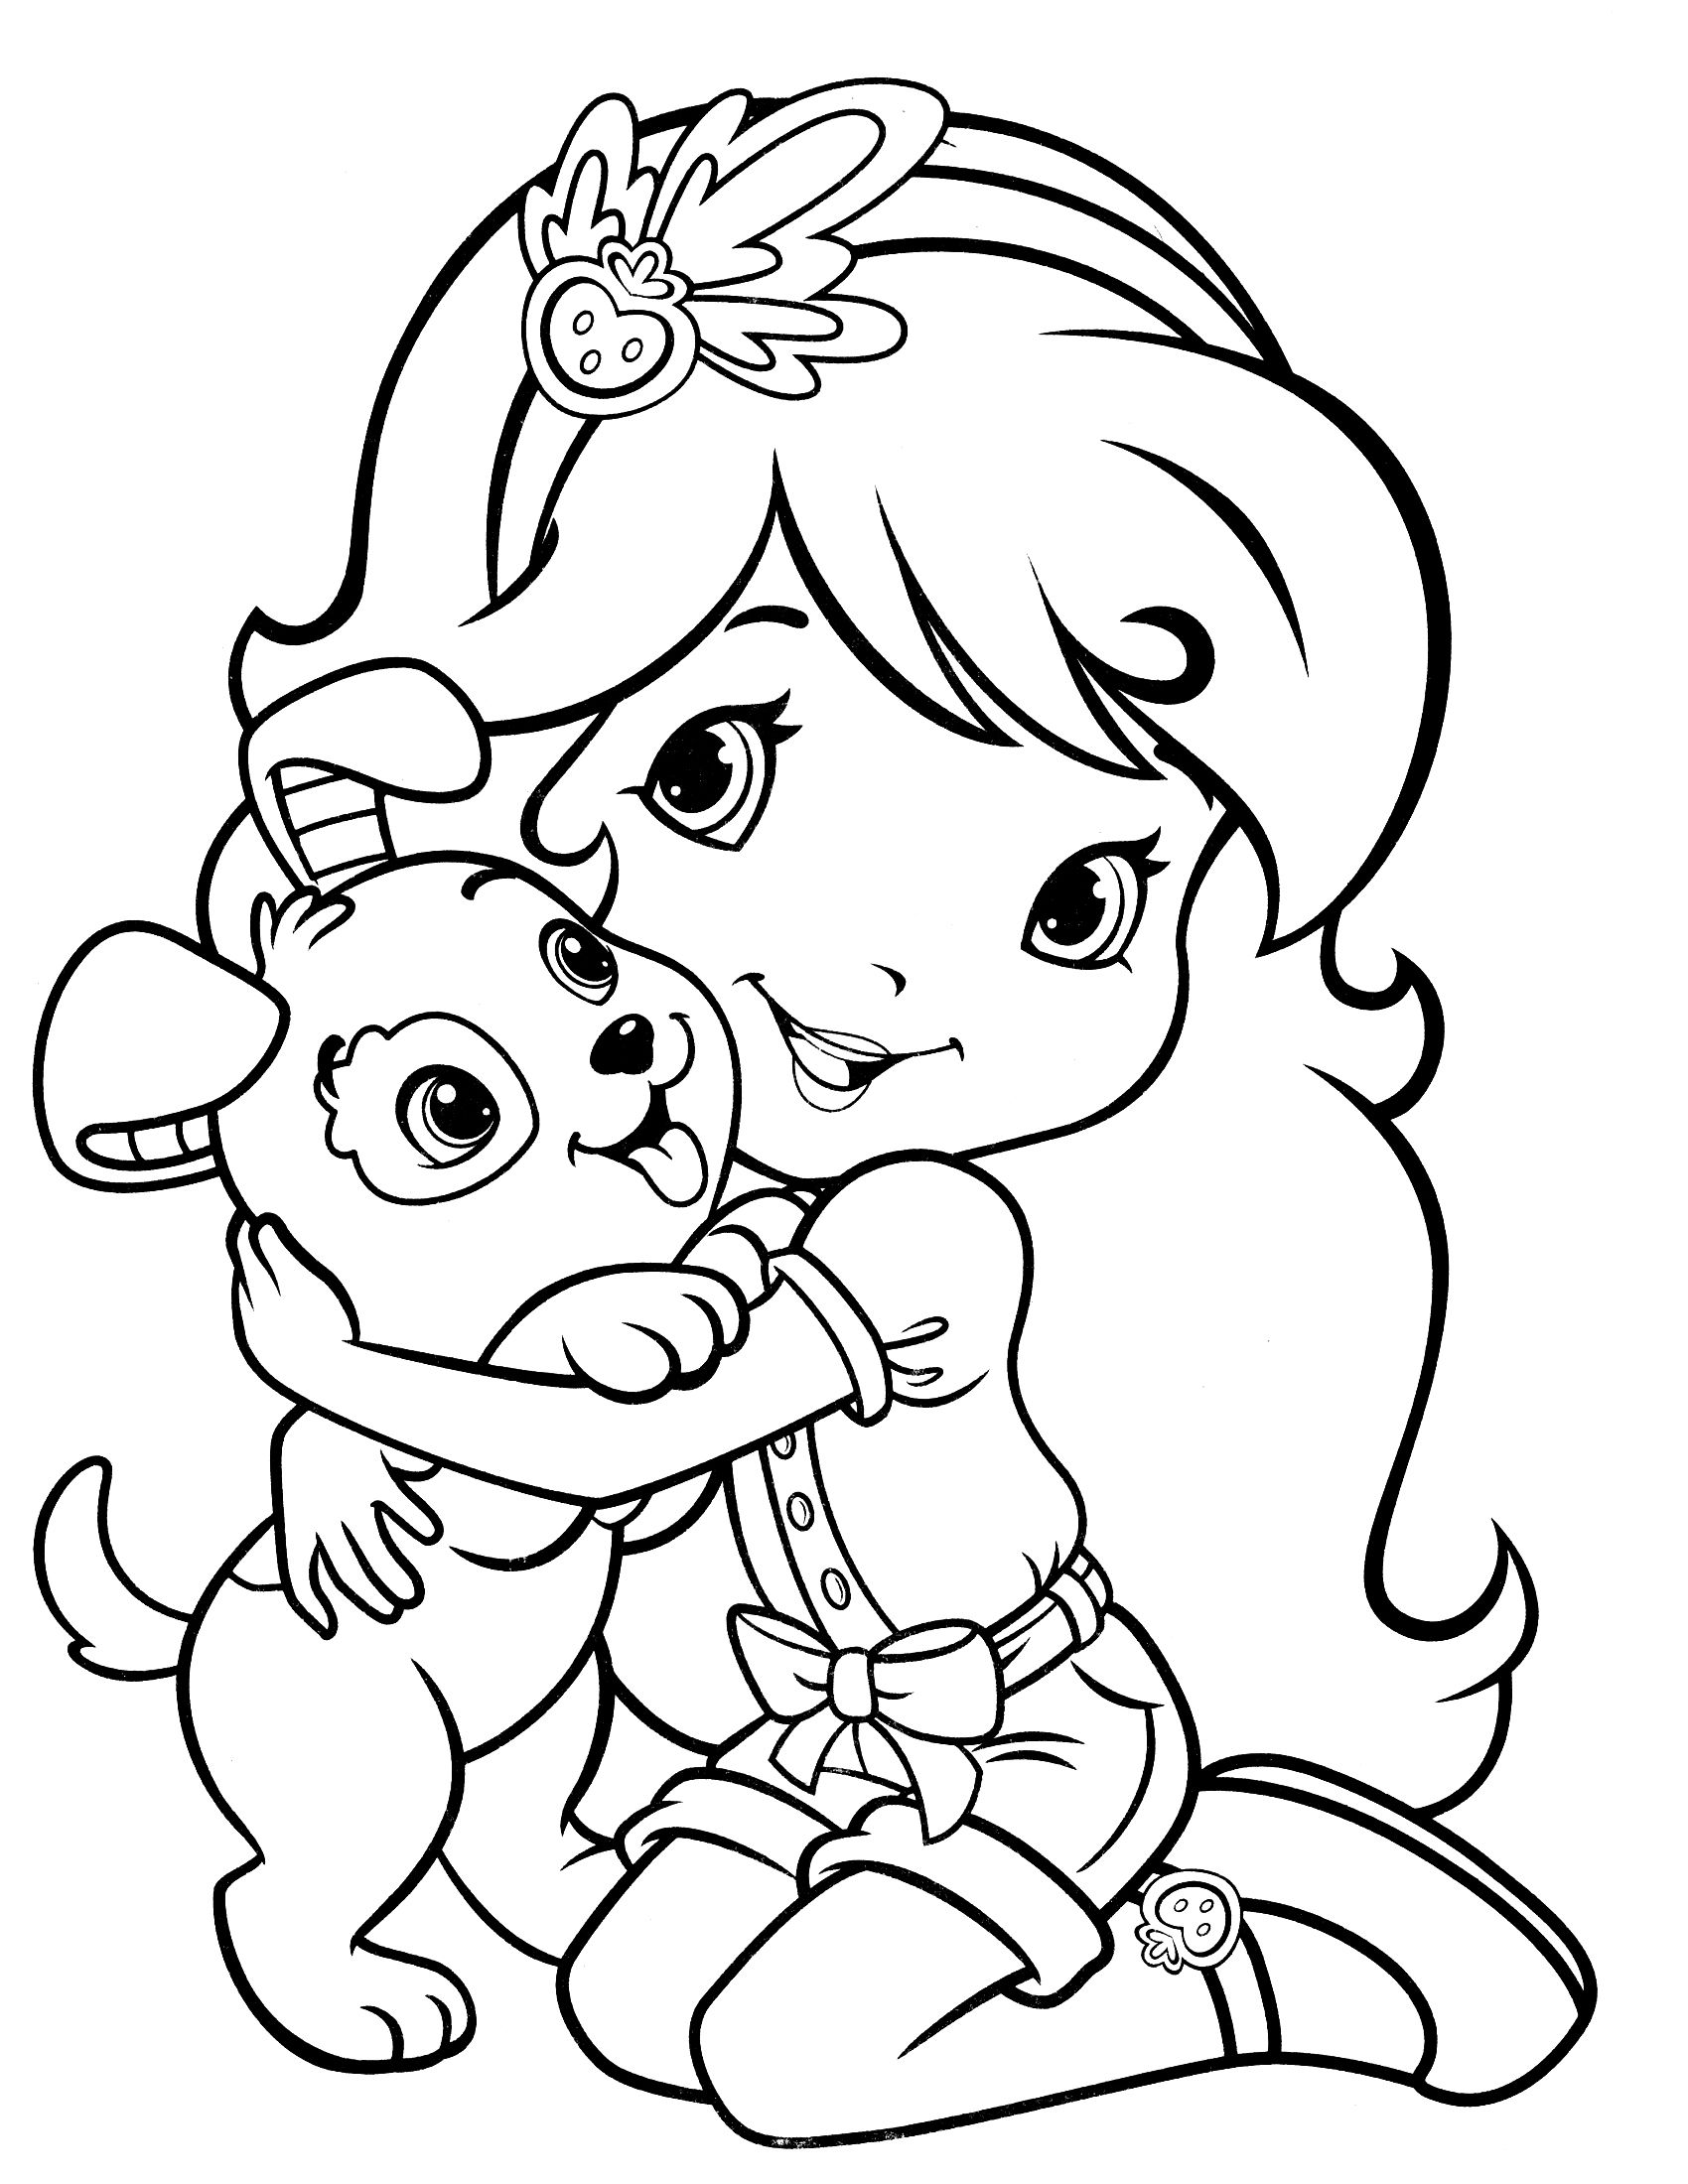 Pin By Katrina Adams On Coloring Sheets Strawberry Shortcake